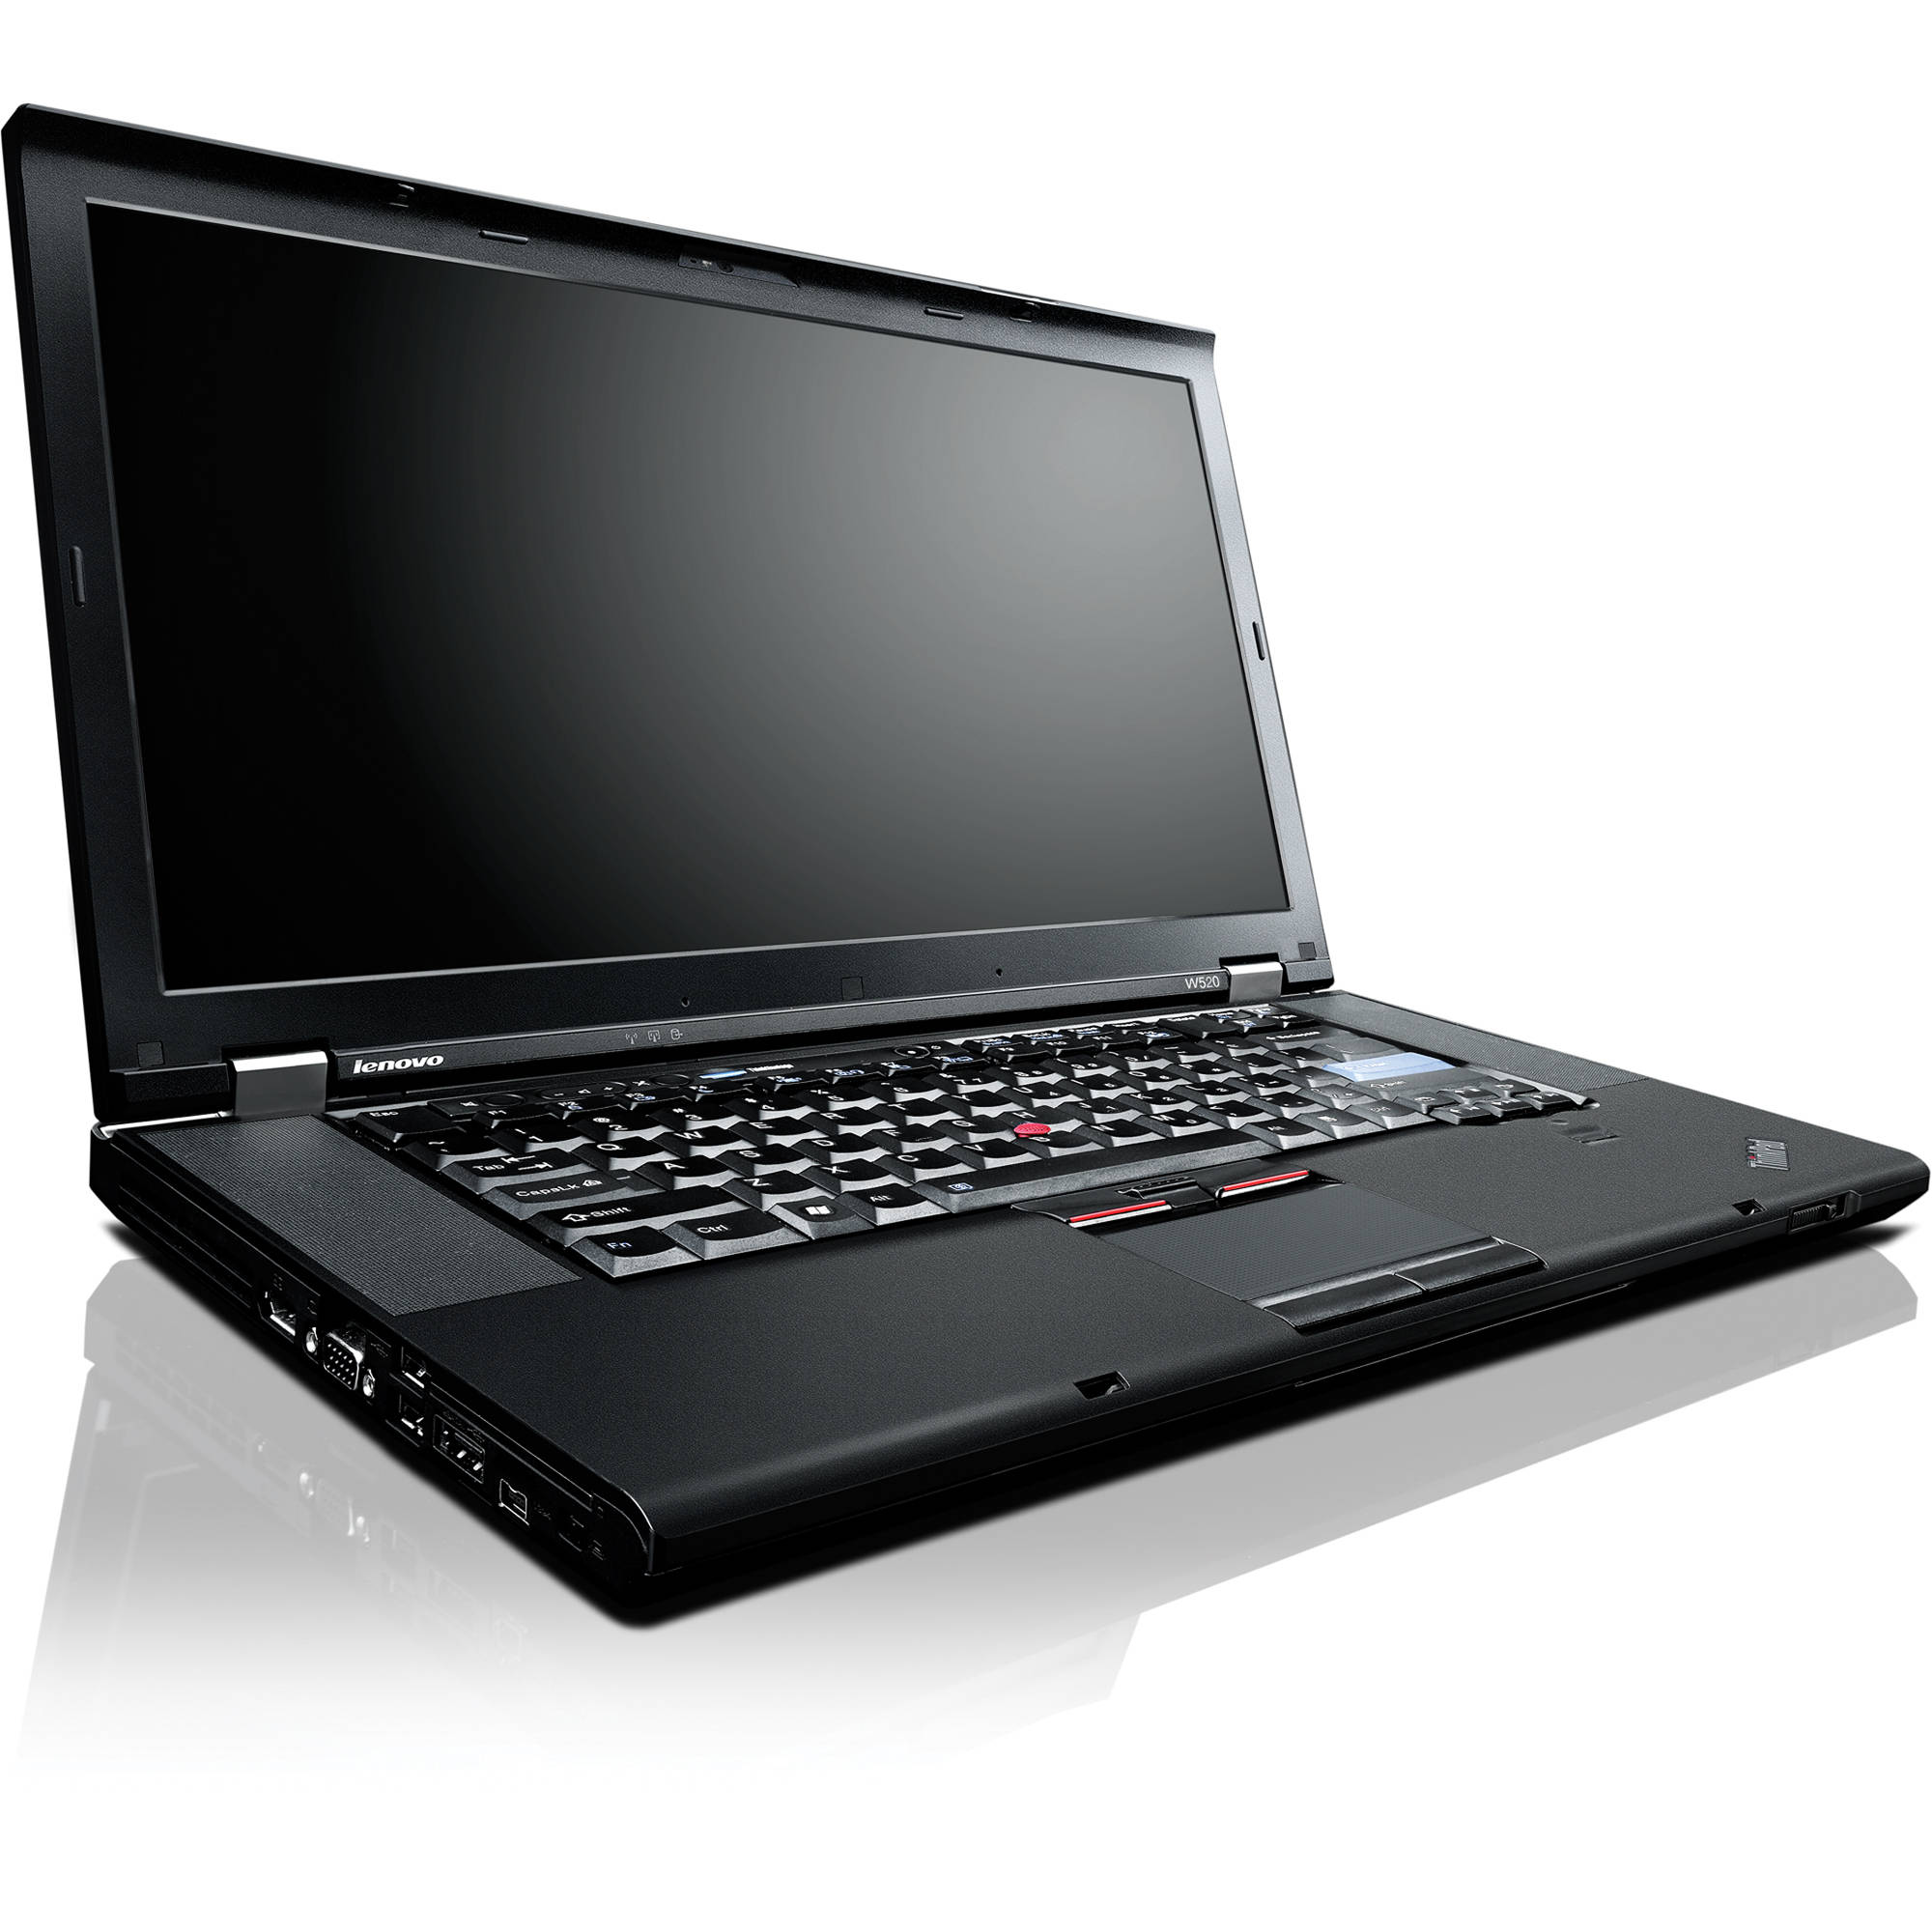 LENOVO THINKPAD W520 THINKVANTAGE FINGERPRINT WINDOWS 7 DRIVERS DOWNLOAD (2019)